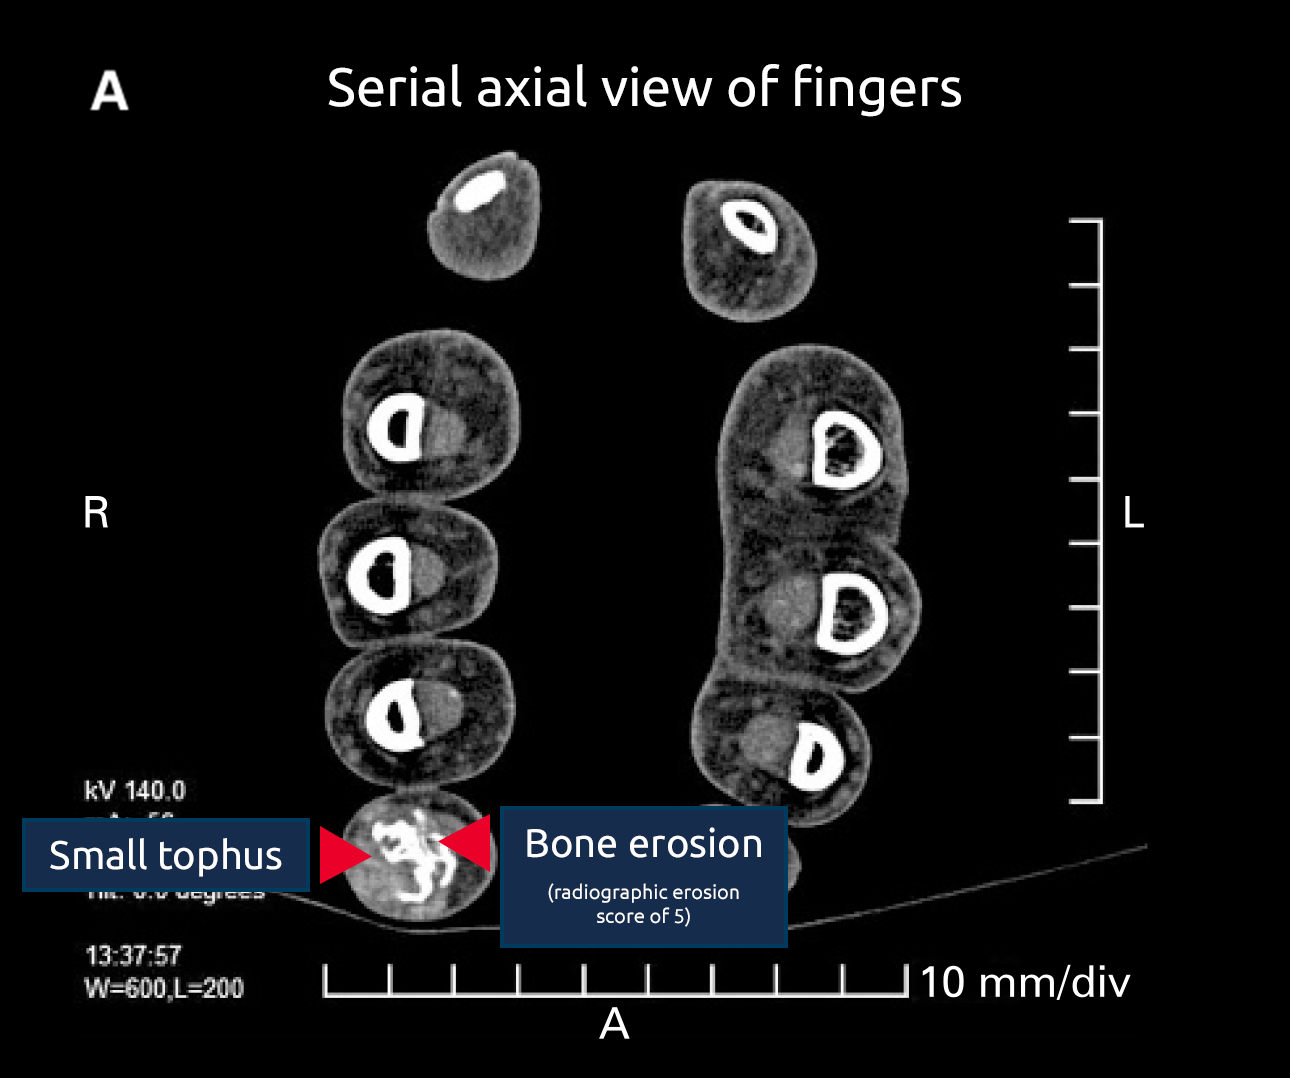 Serial axial view of fingers Small tophus Bone erosion (radiographic erosion score of 5)